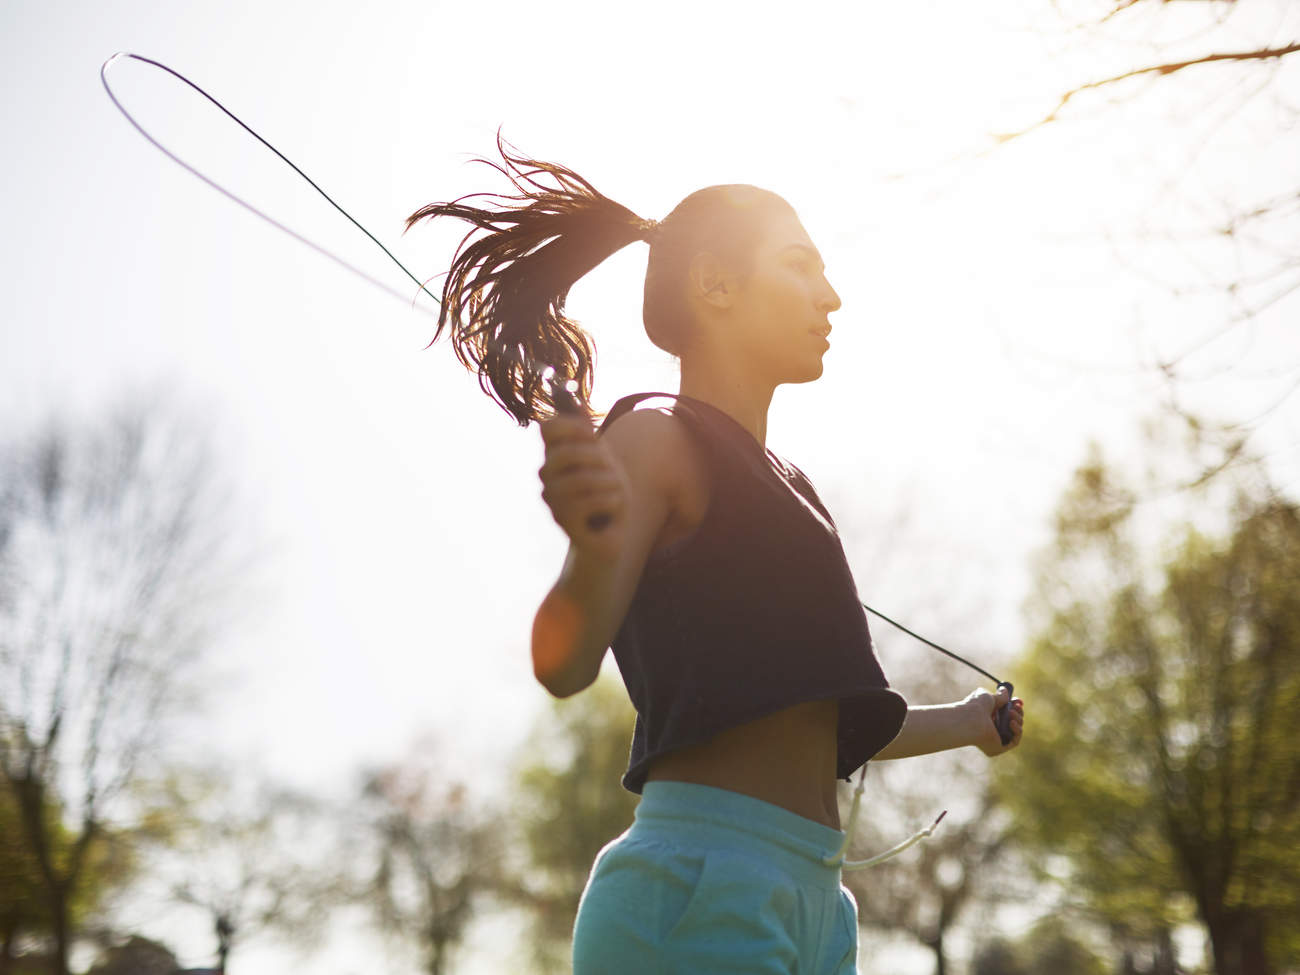 kira-stokes-18-minute-jump-rope-workout-video